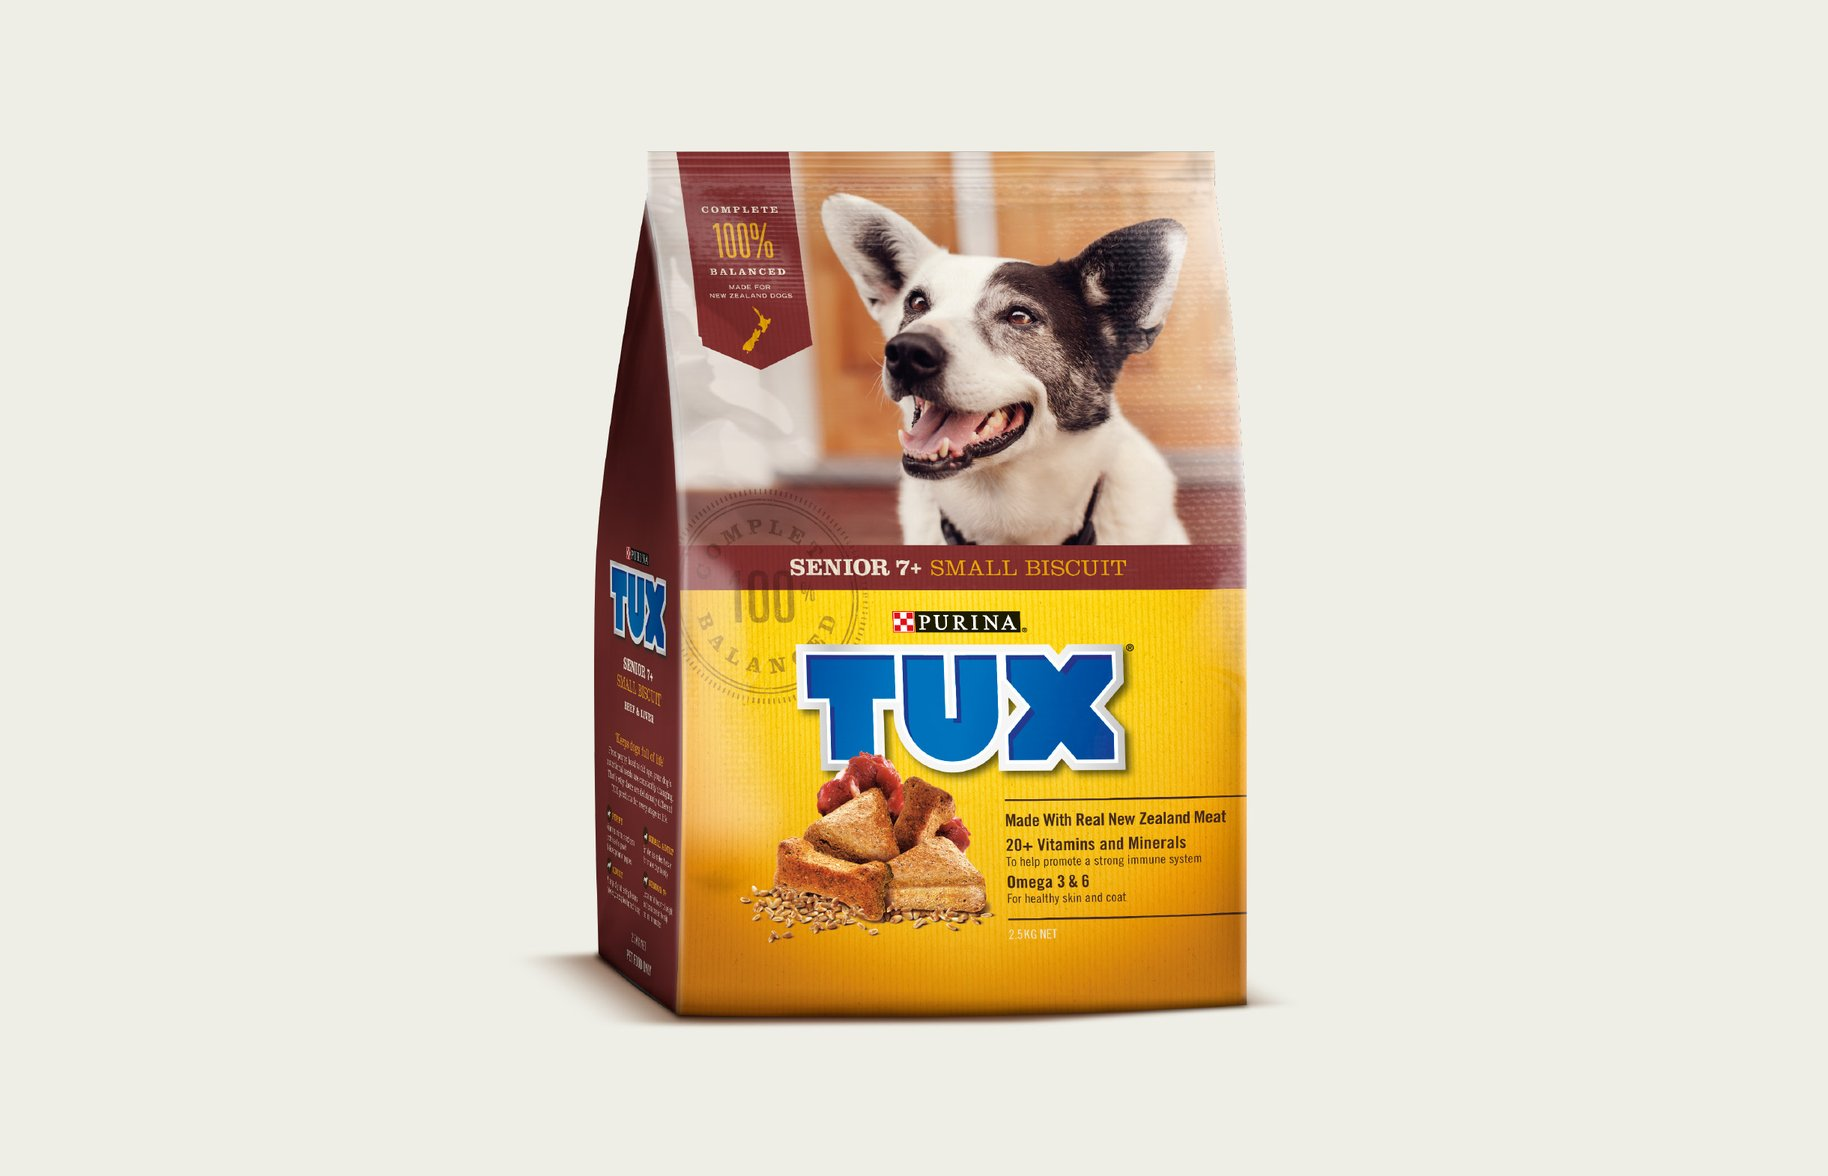 Tux Senior 7+ Small Biscuit packaging